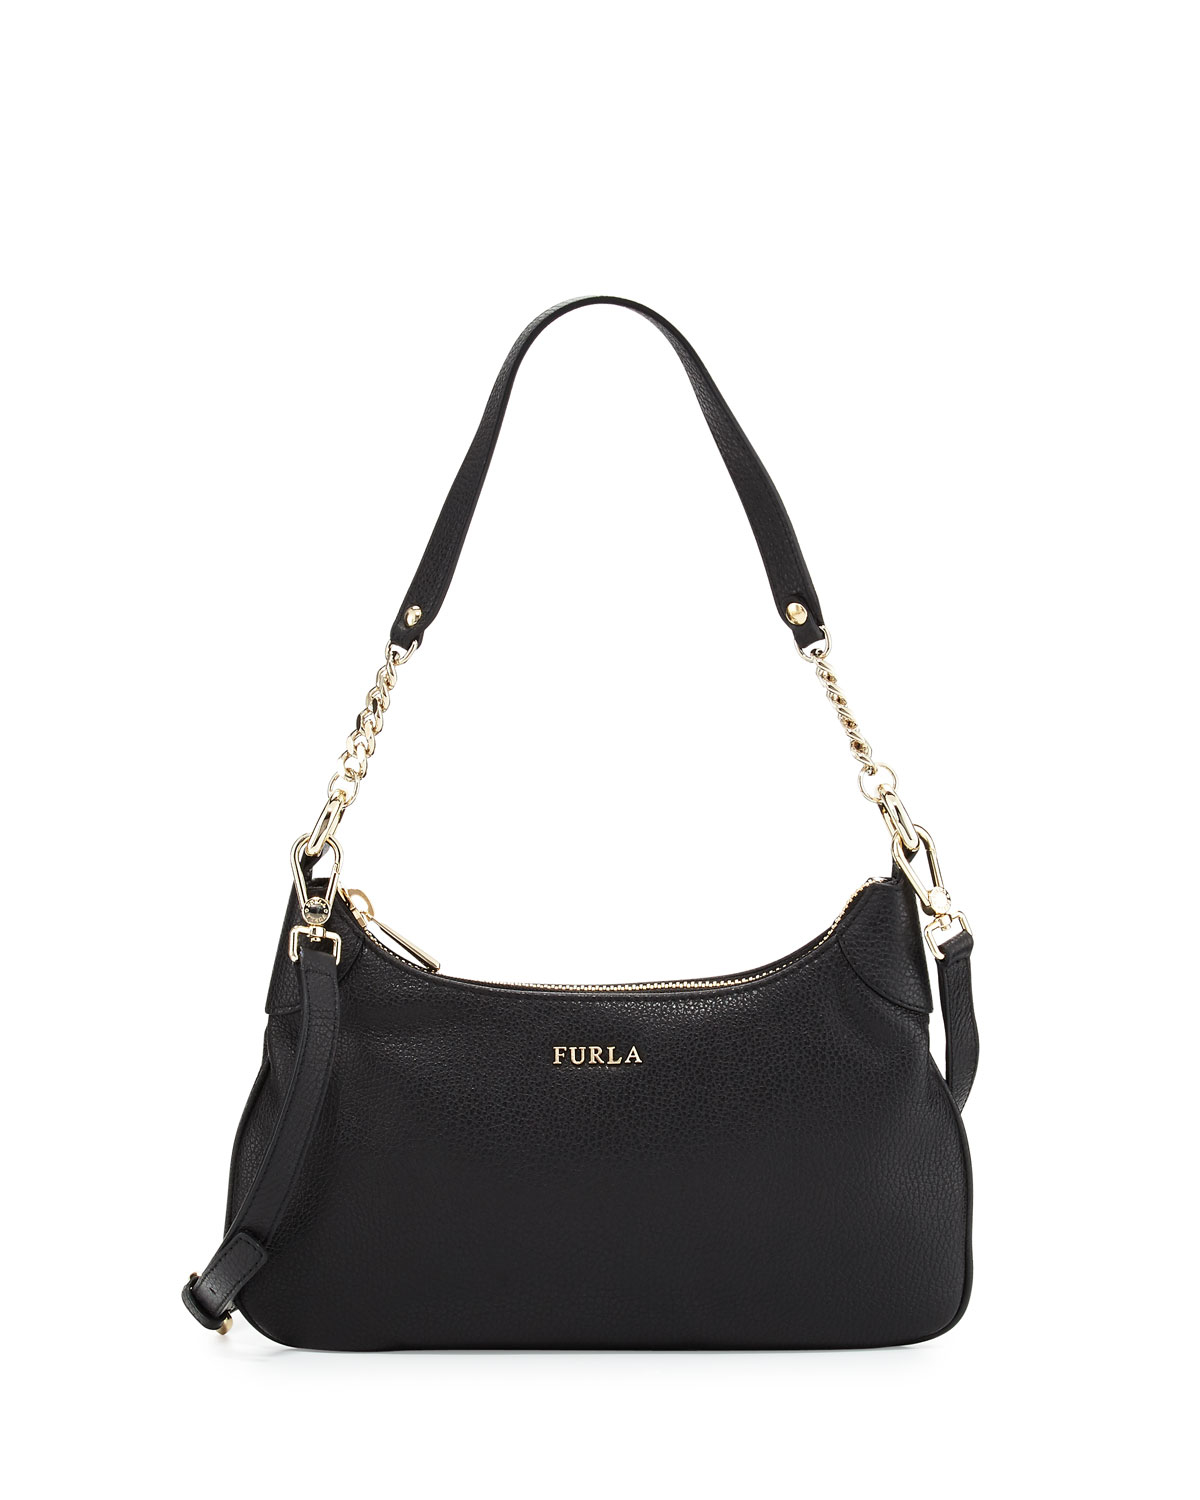 Furla Julia Chain Small Leather Hobo Bag in Black | Lyst